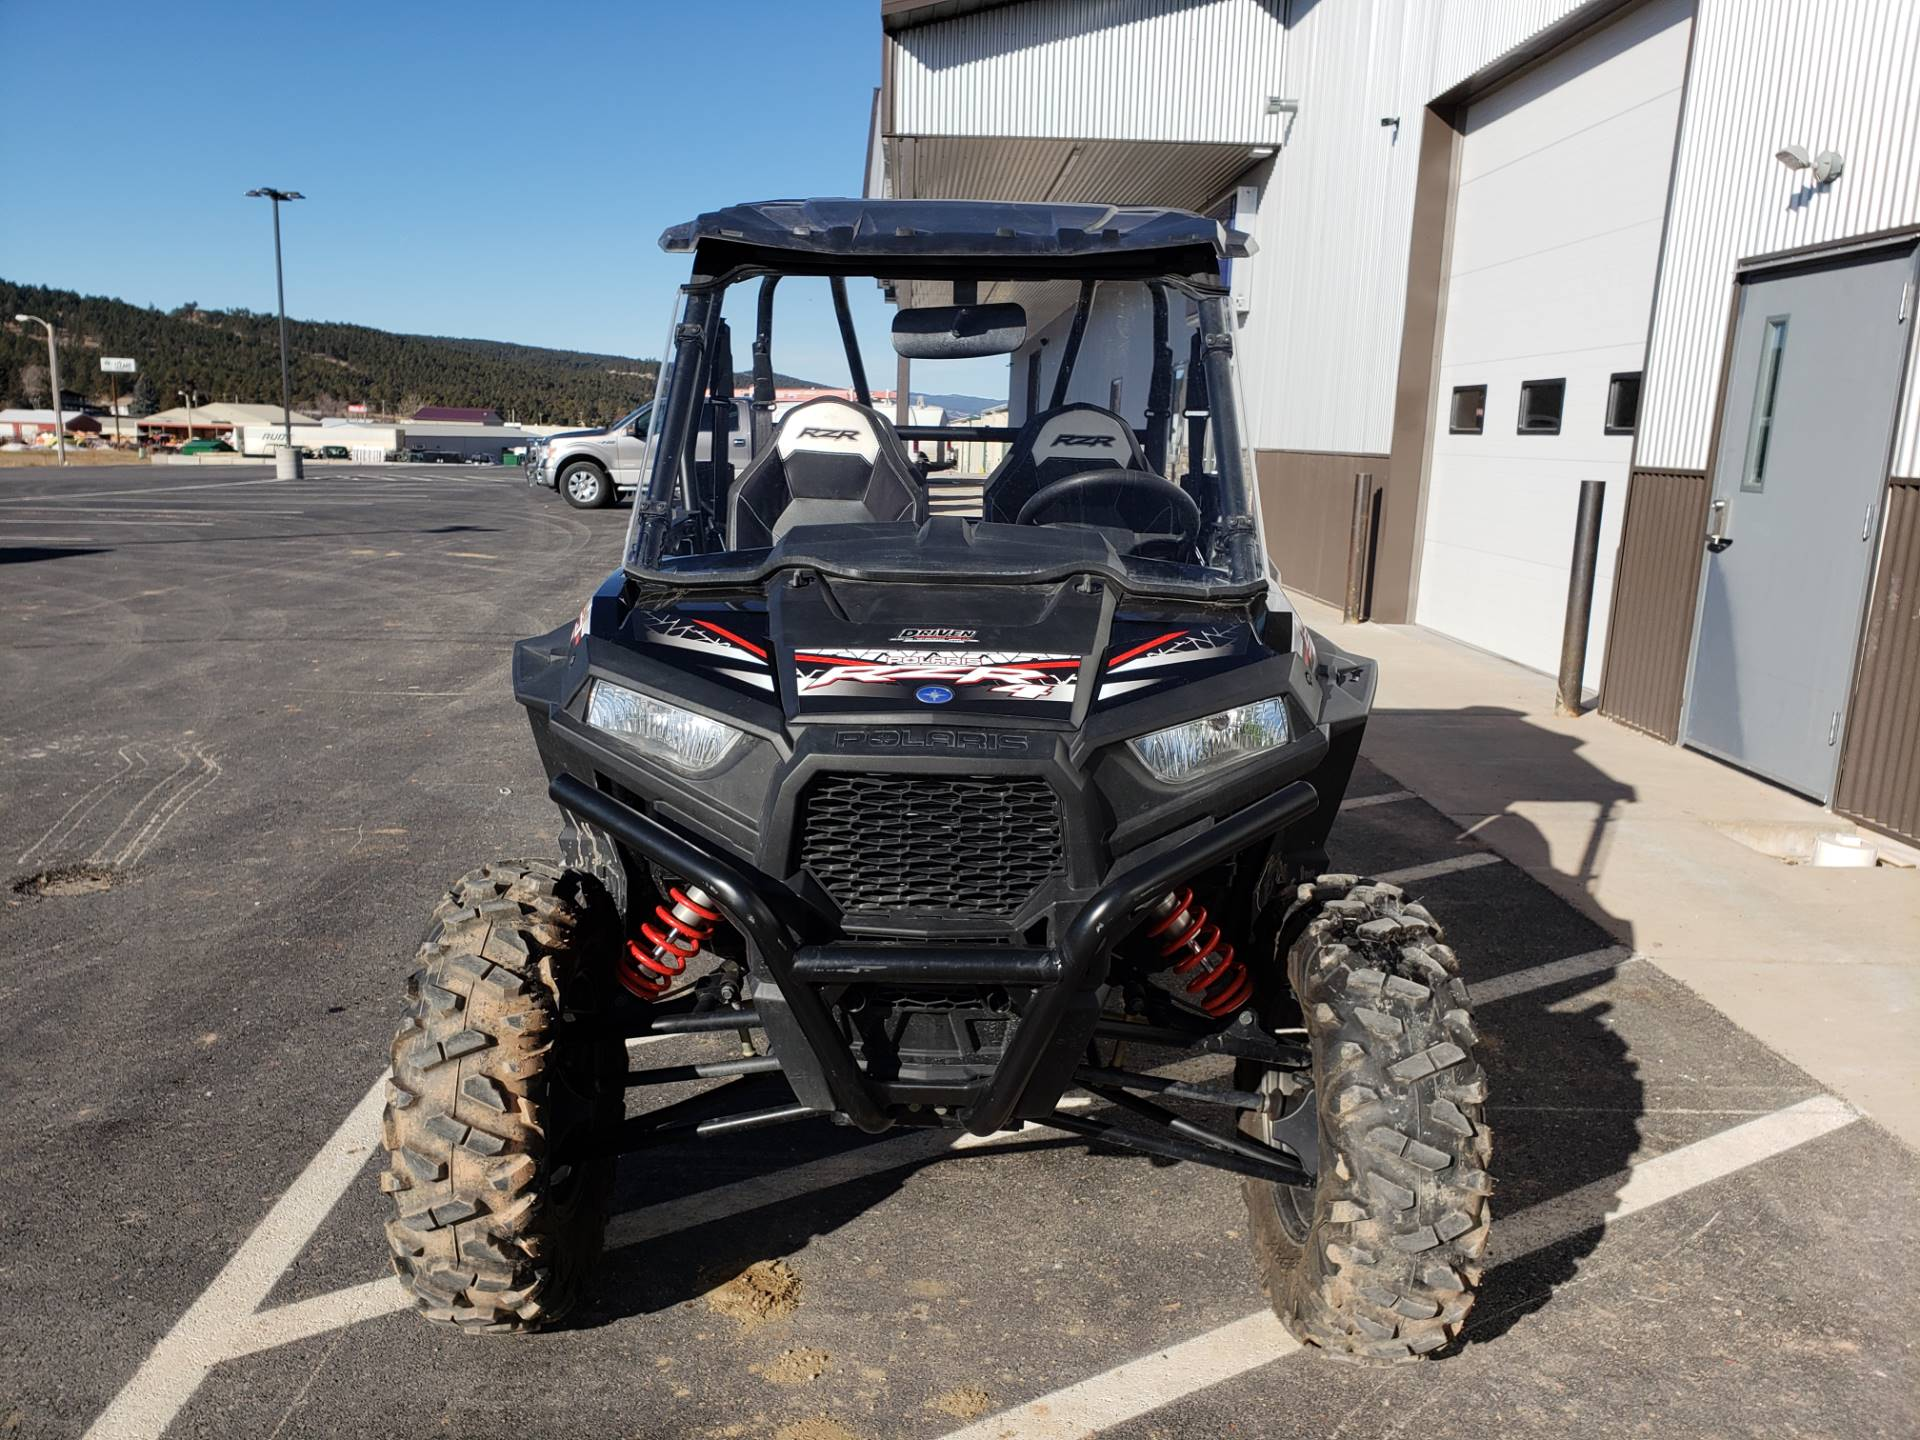 2017 Polaris RZR 4 900 EPS 6